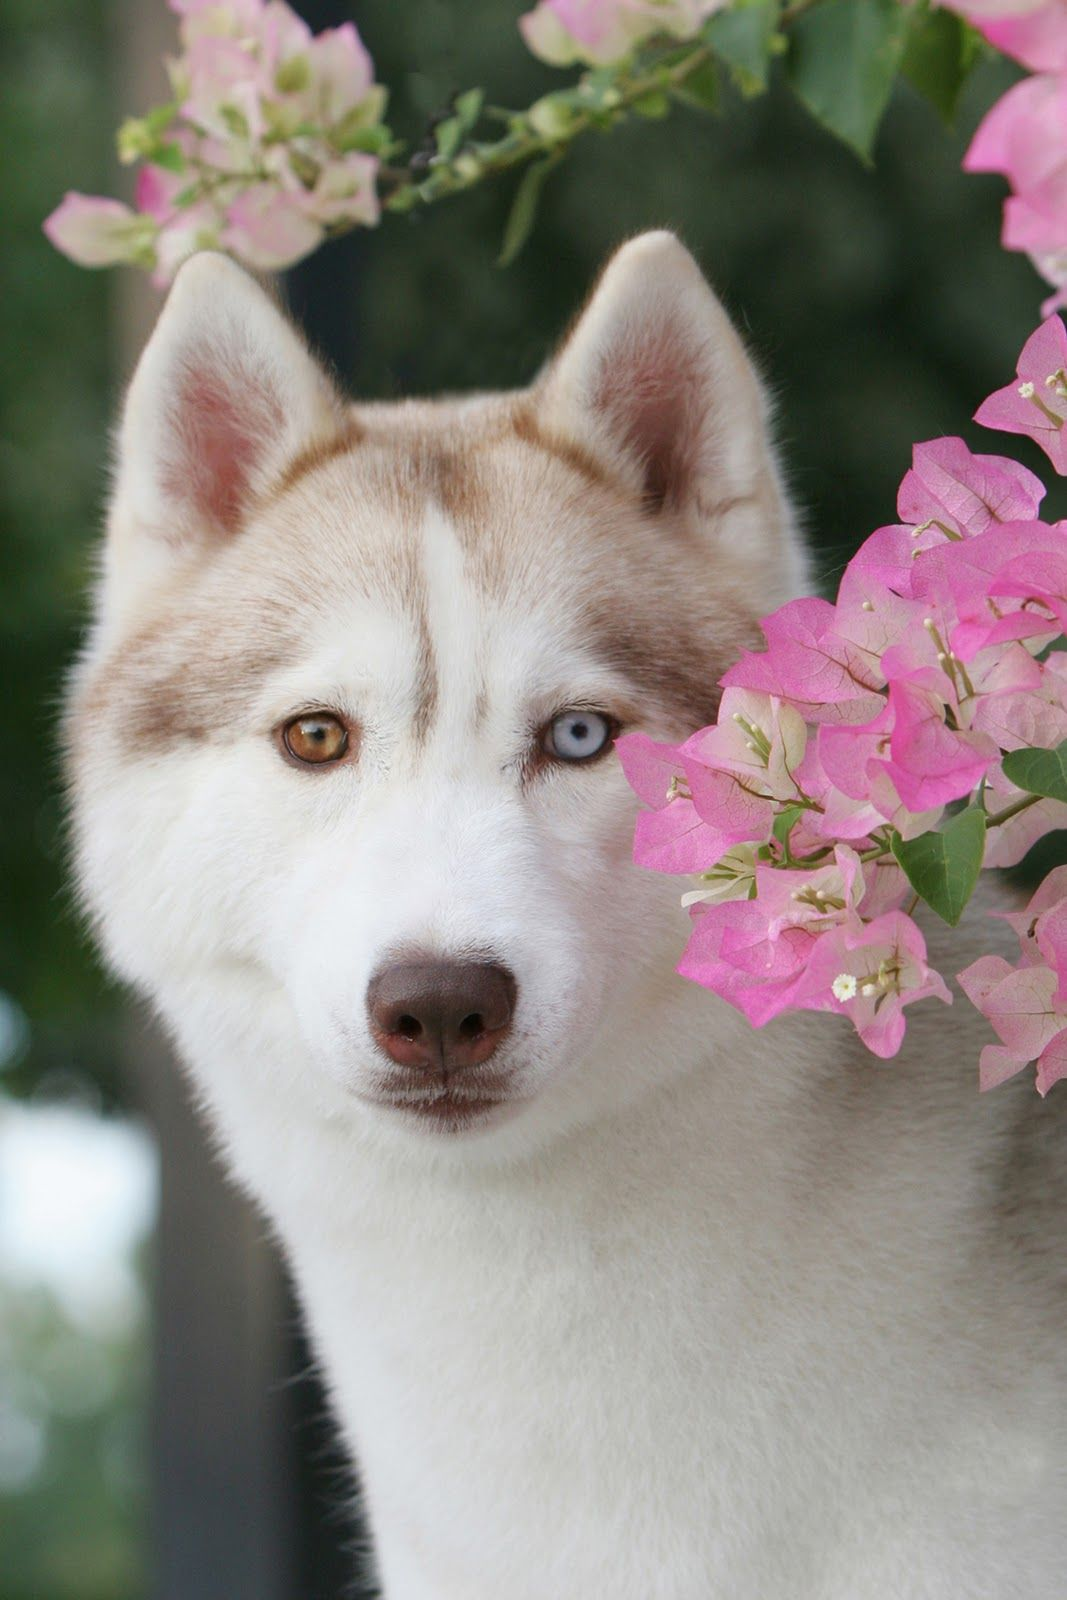 Red Siberian Huskies Visit The Image Link For More Details On